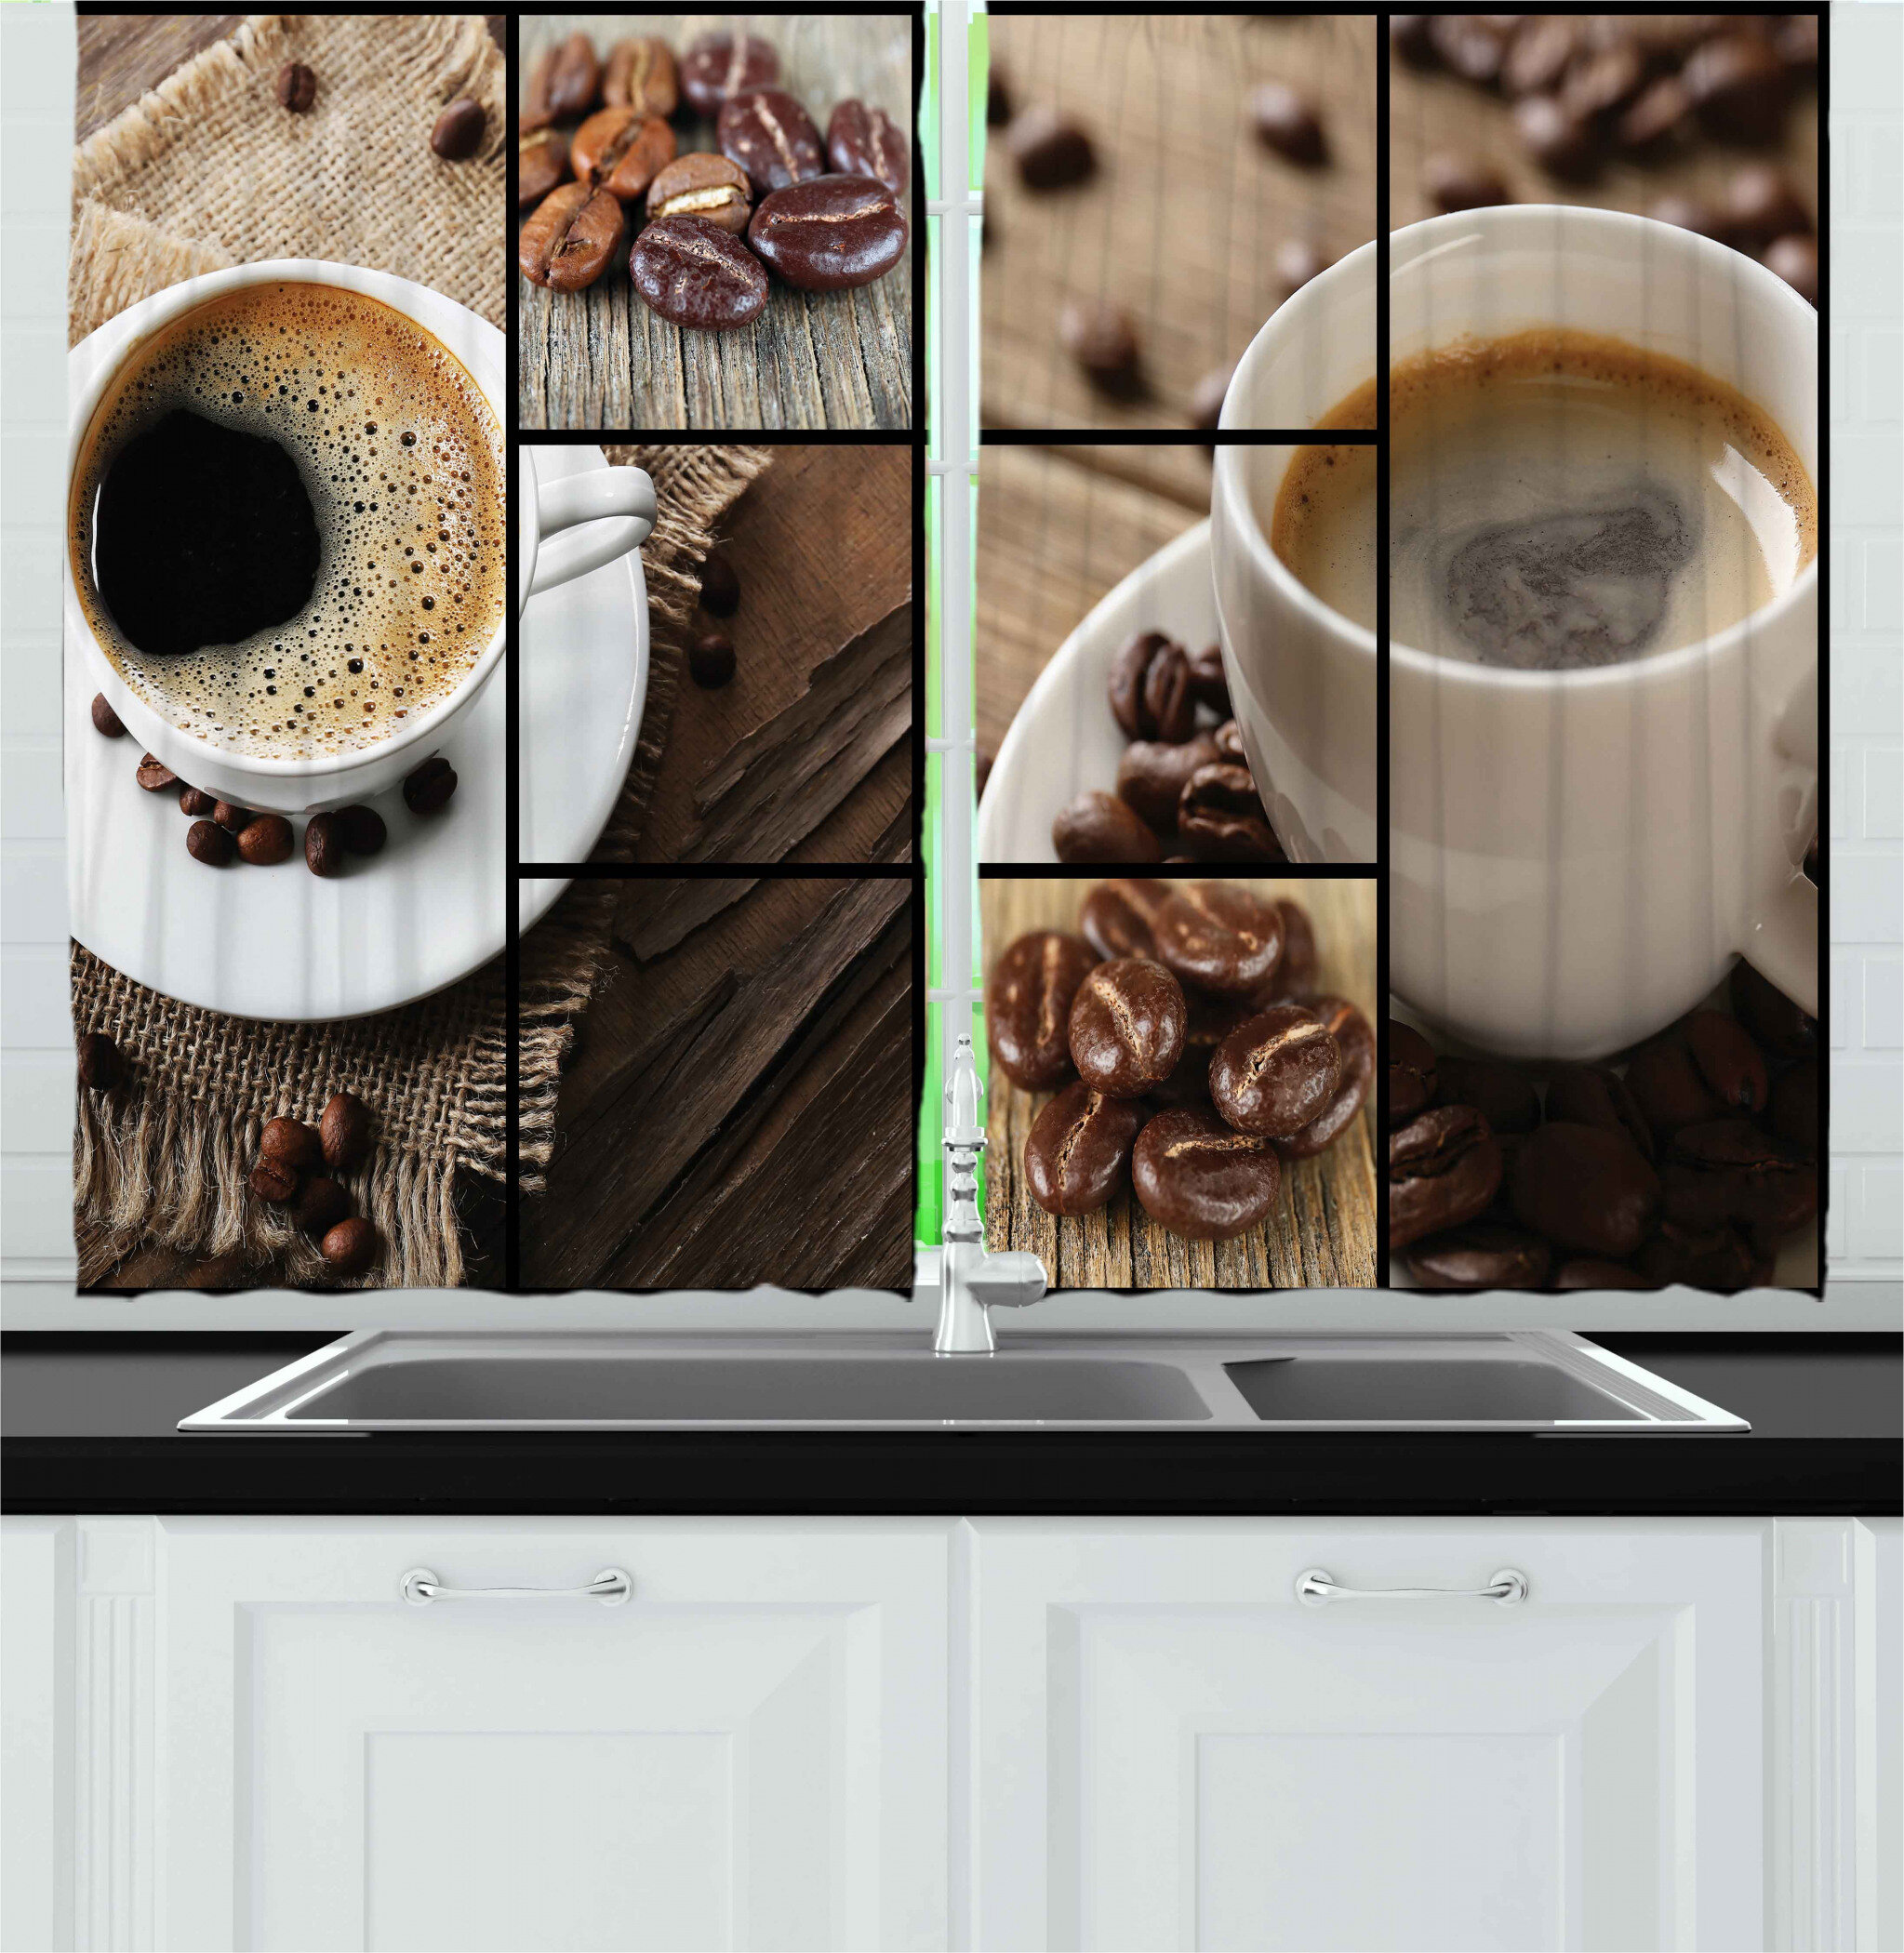 East Urban Home 2 Piece Coffee Themed Collage Close Up Mugs Beans On Wooden Table Aromatic Roasted Drink Kitchen Curtain Wayfair